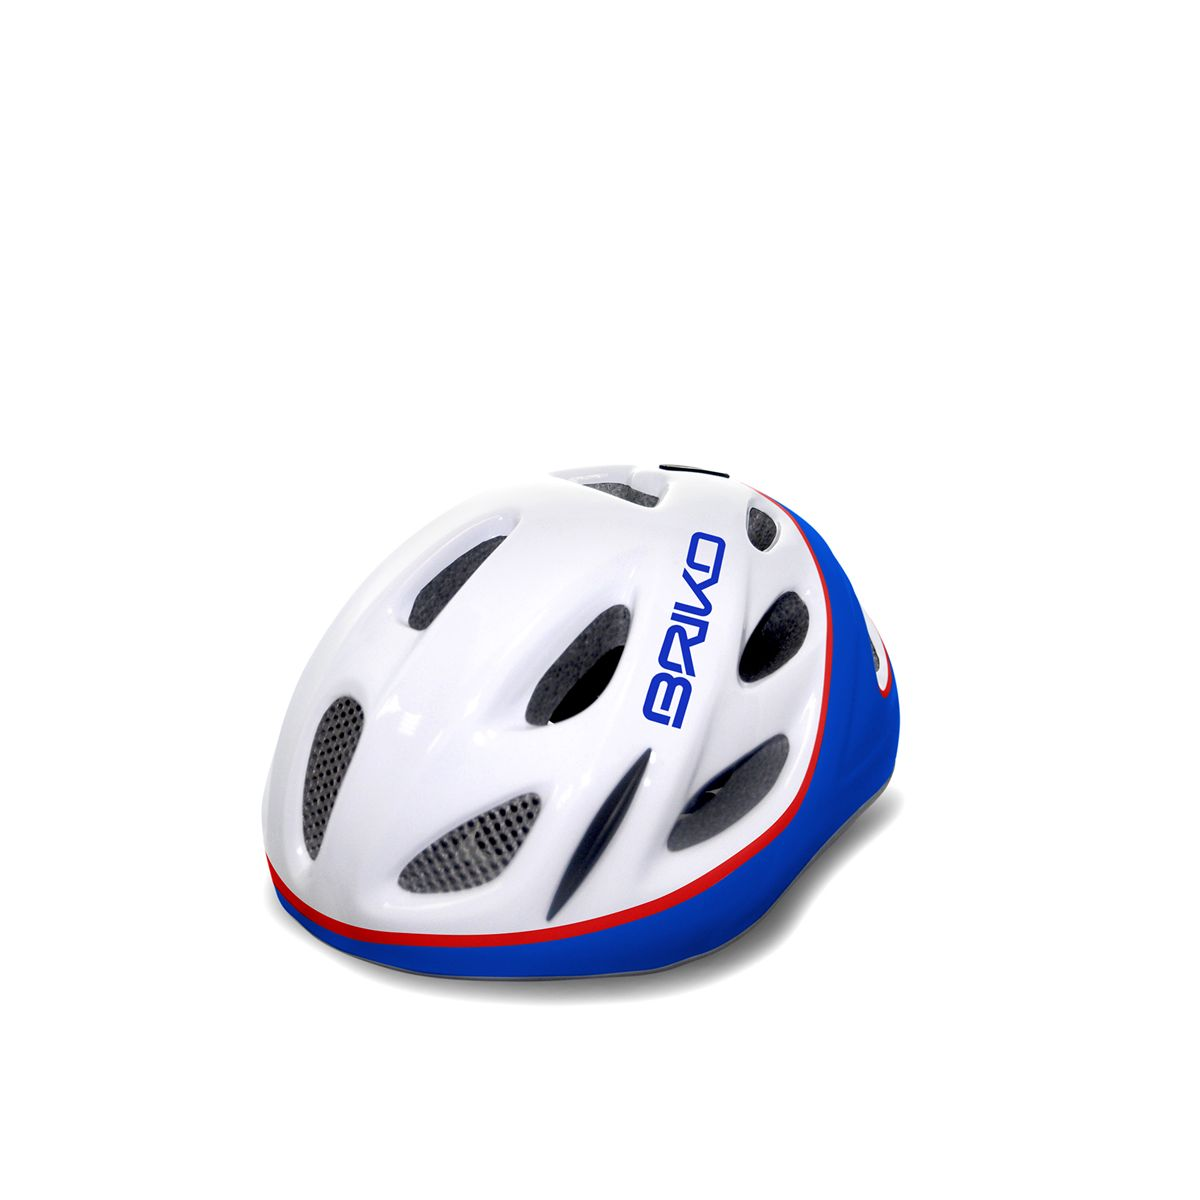 w045-white-blue-red